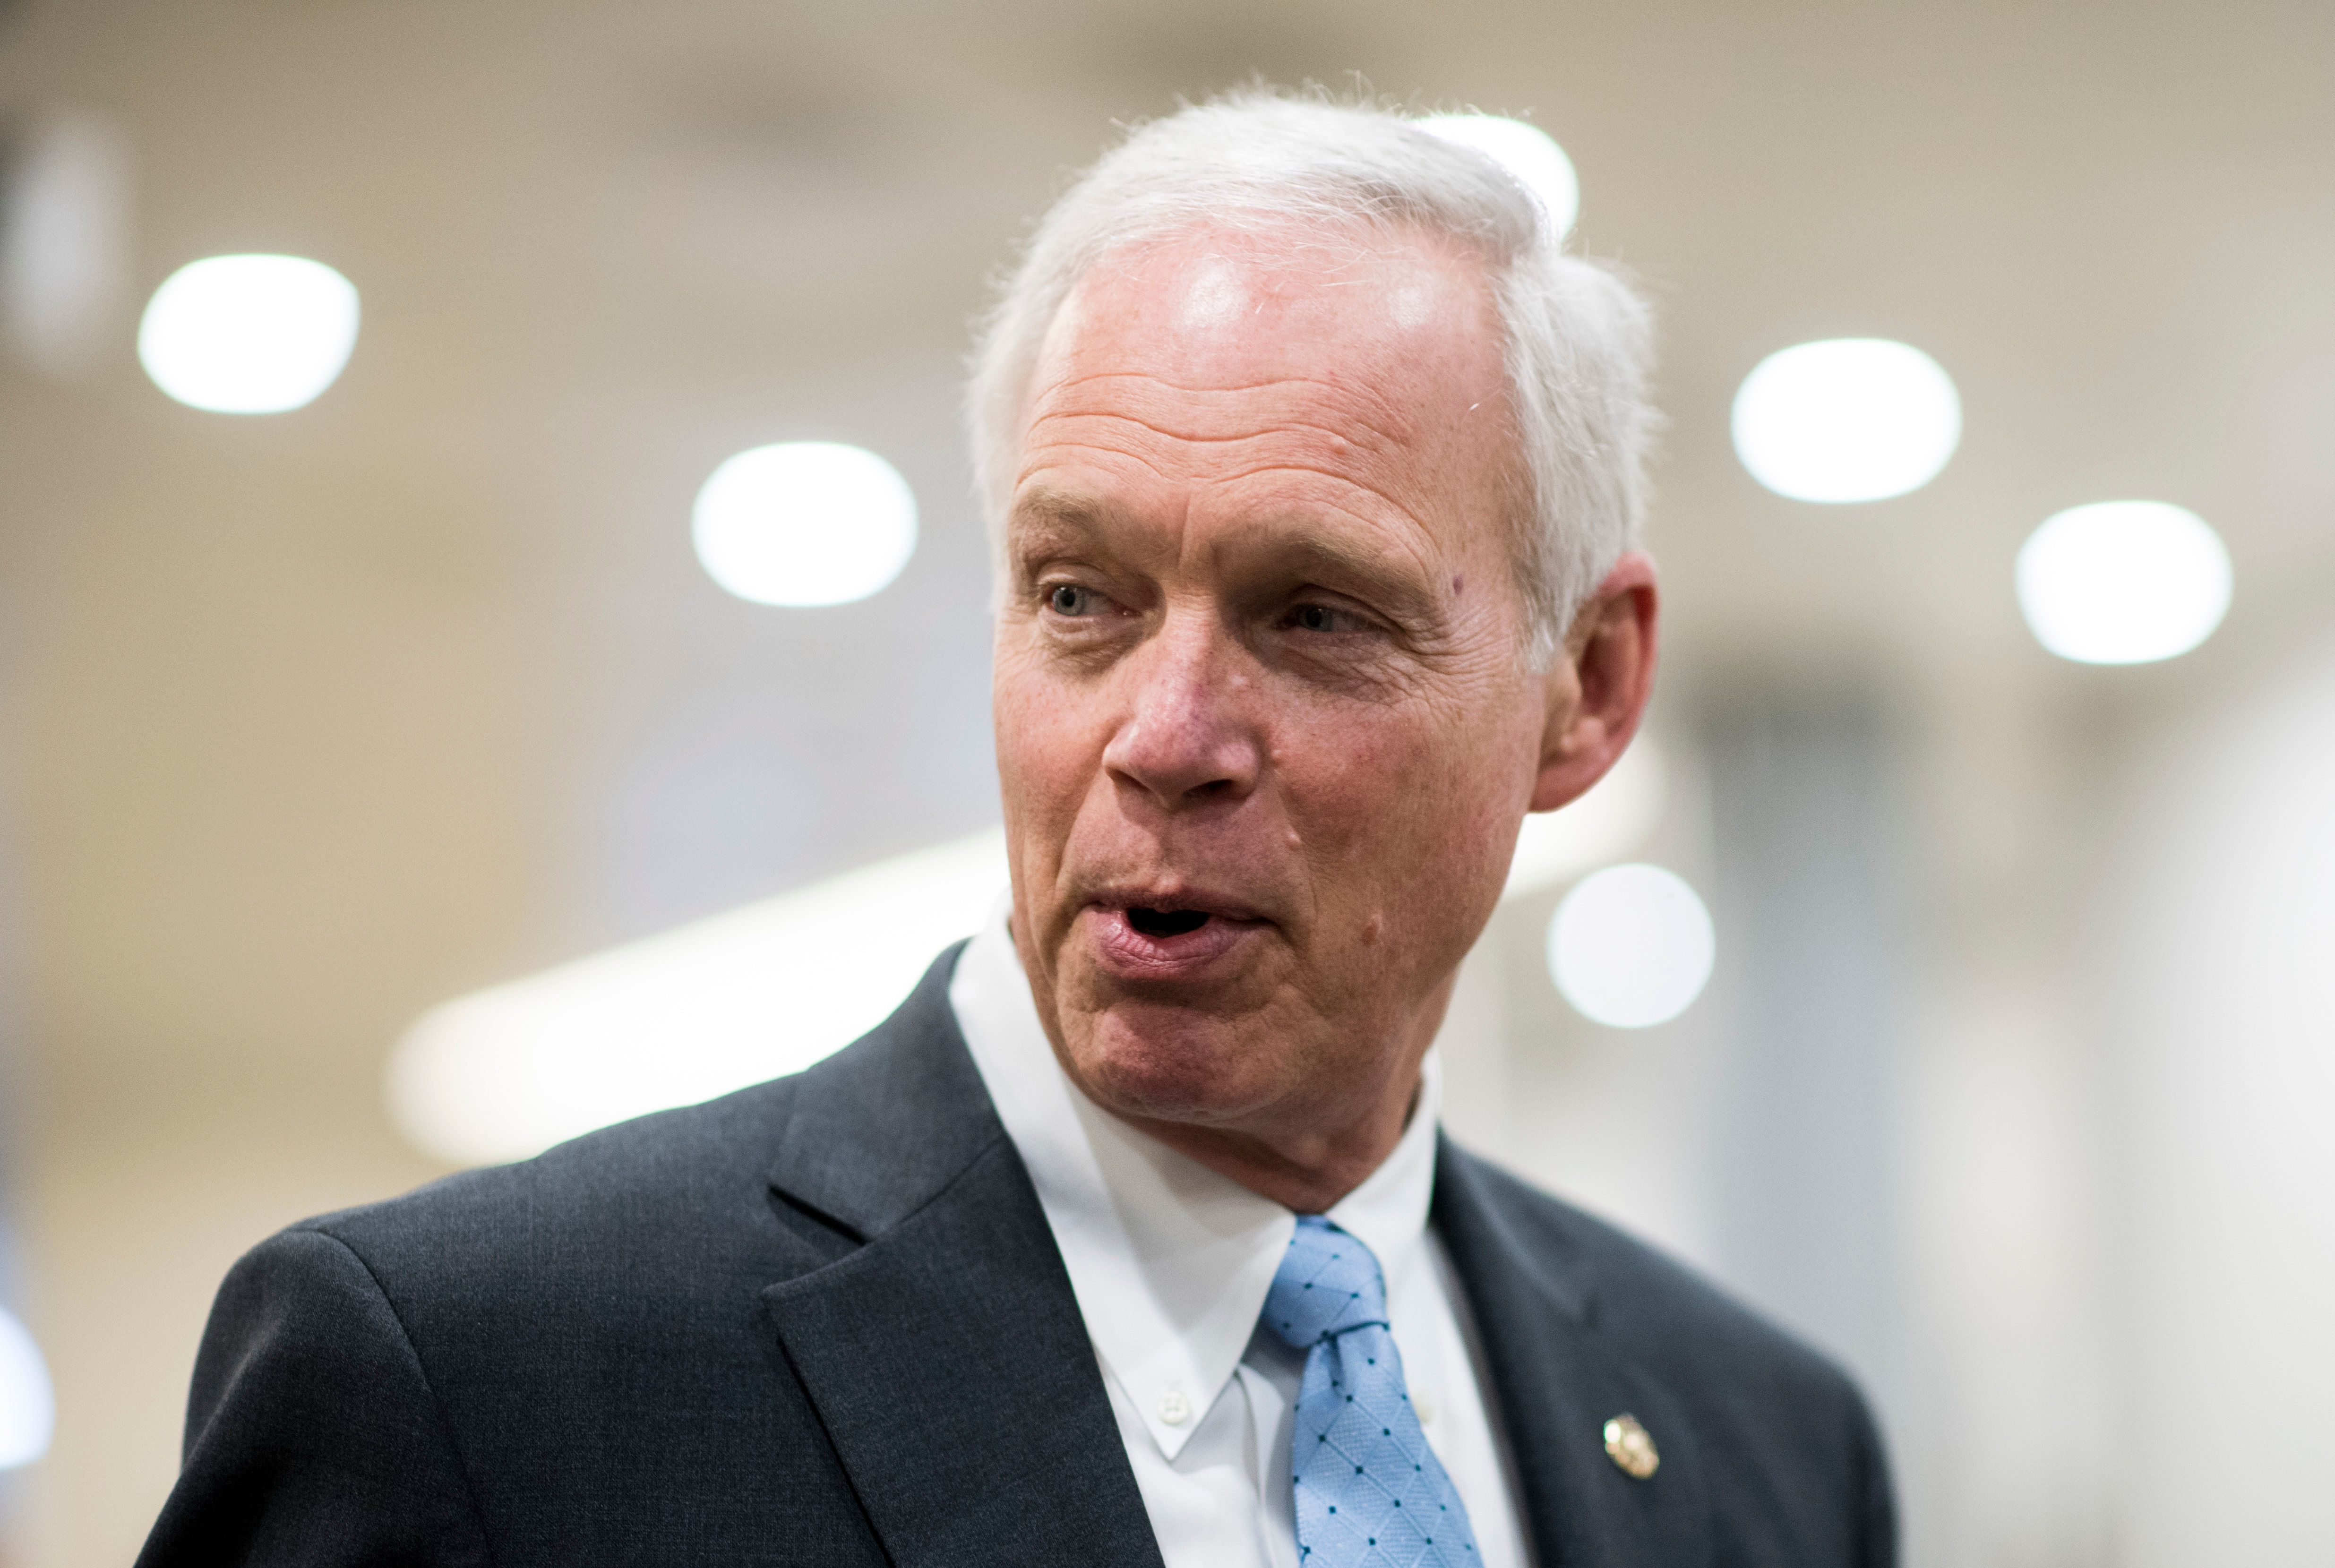 UNITED STATES - MARCH 14: Sen. Ron Johnson, R-Wisc., speaks with reporters in the Capitol on Wednesday, March 14, 2018. (Photo By Bill Clark/CQ Roll Call)